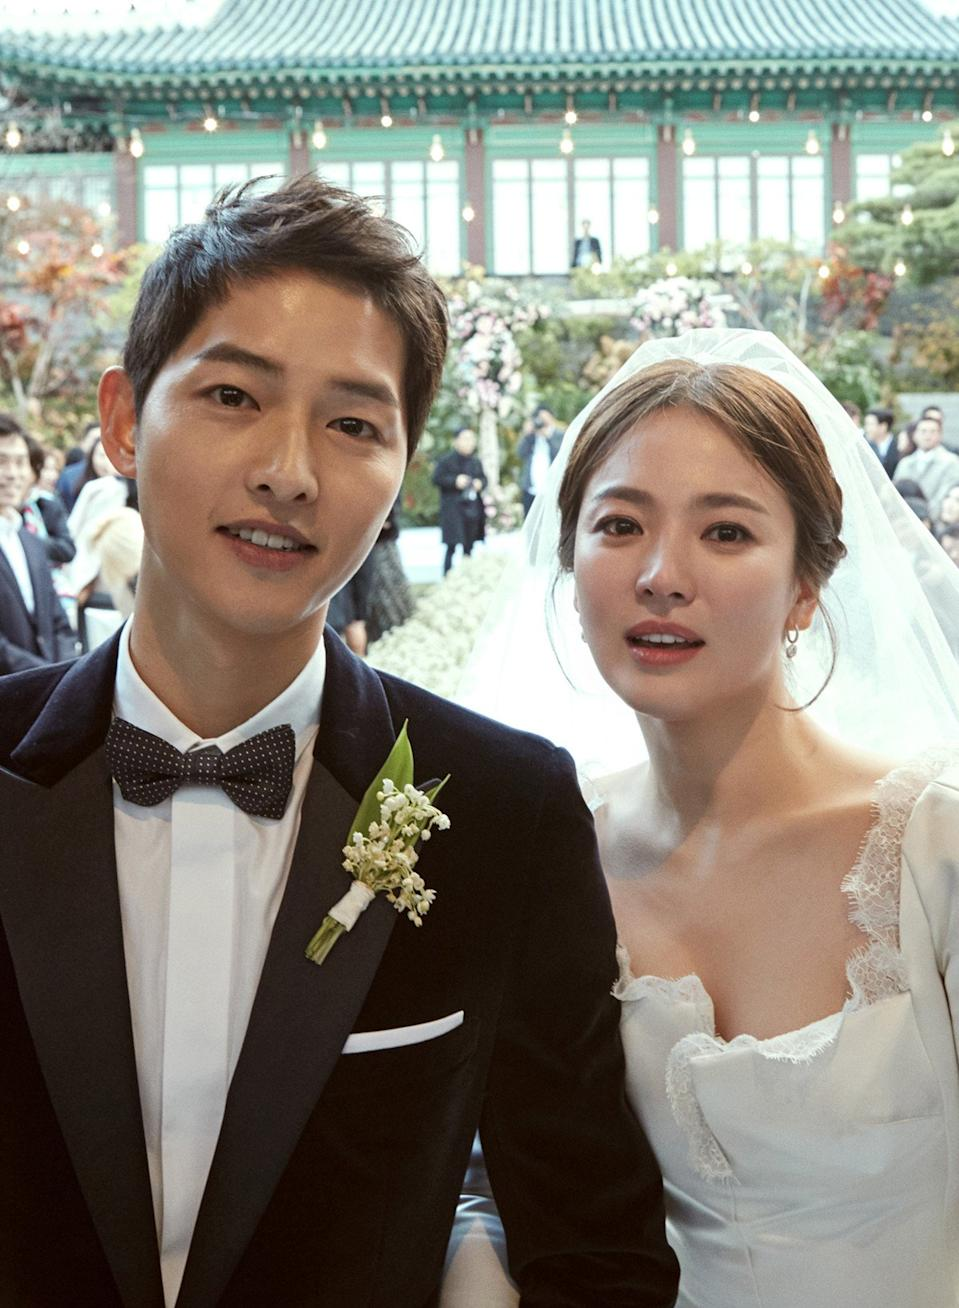 South Korean stars Song Joong-ki and Song Hye-kyo tie the knot. (Photo: Blossom Entertainment)